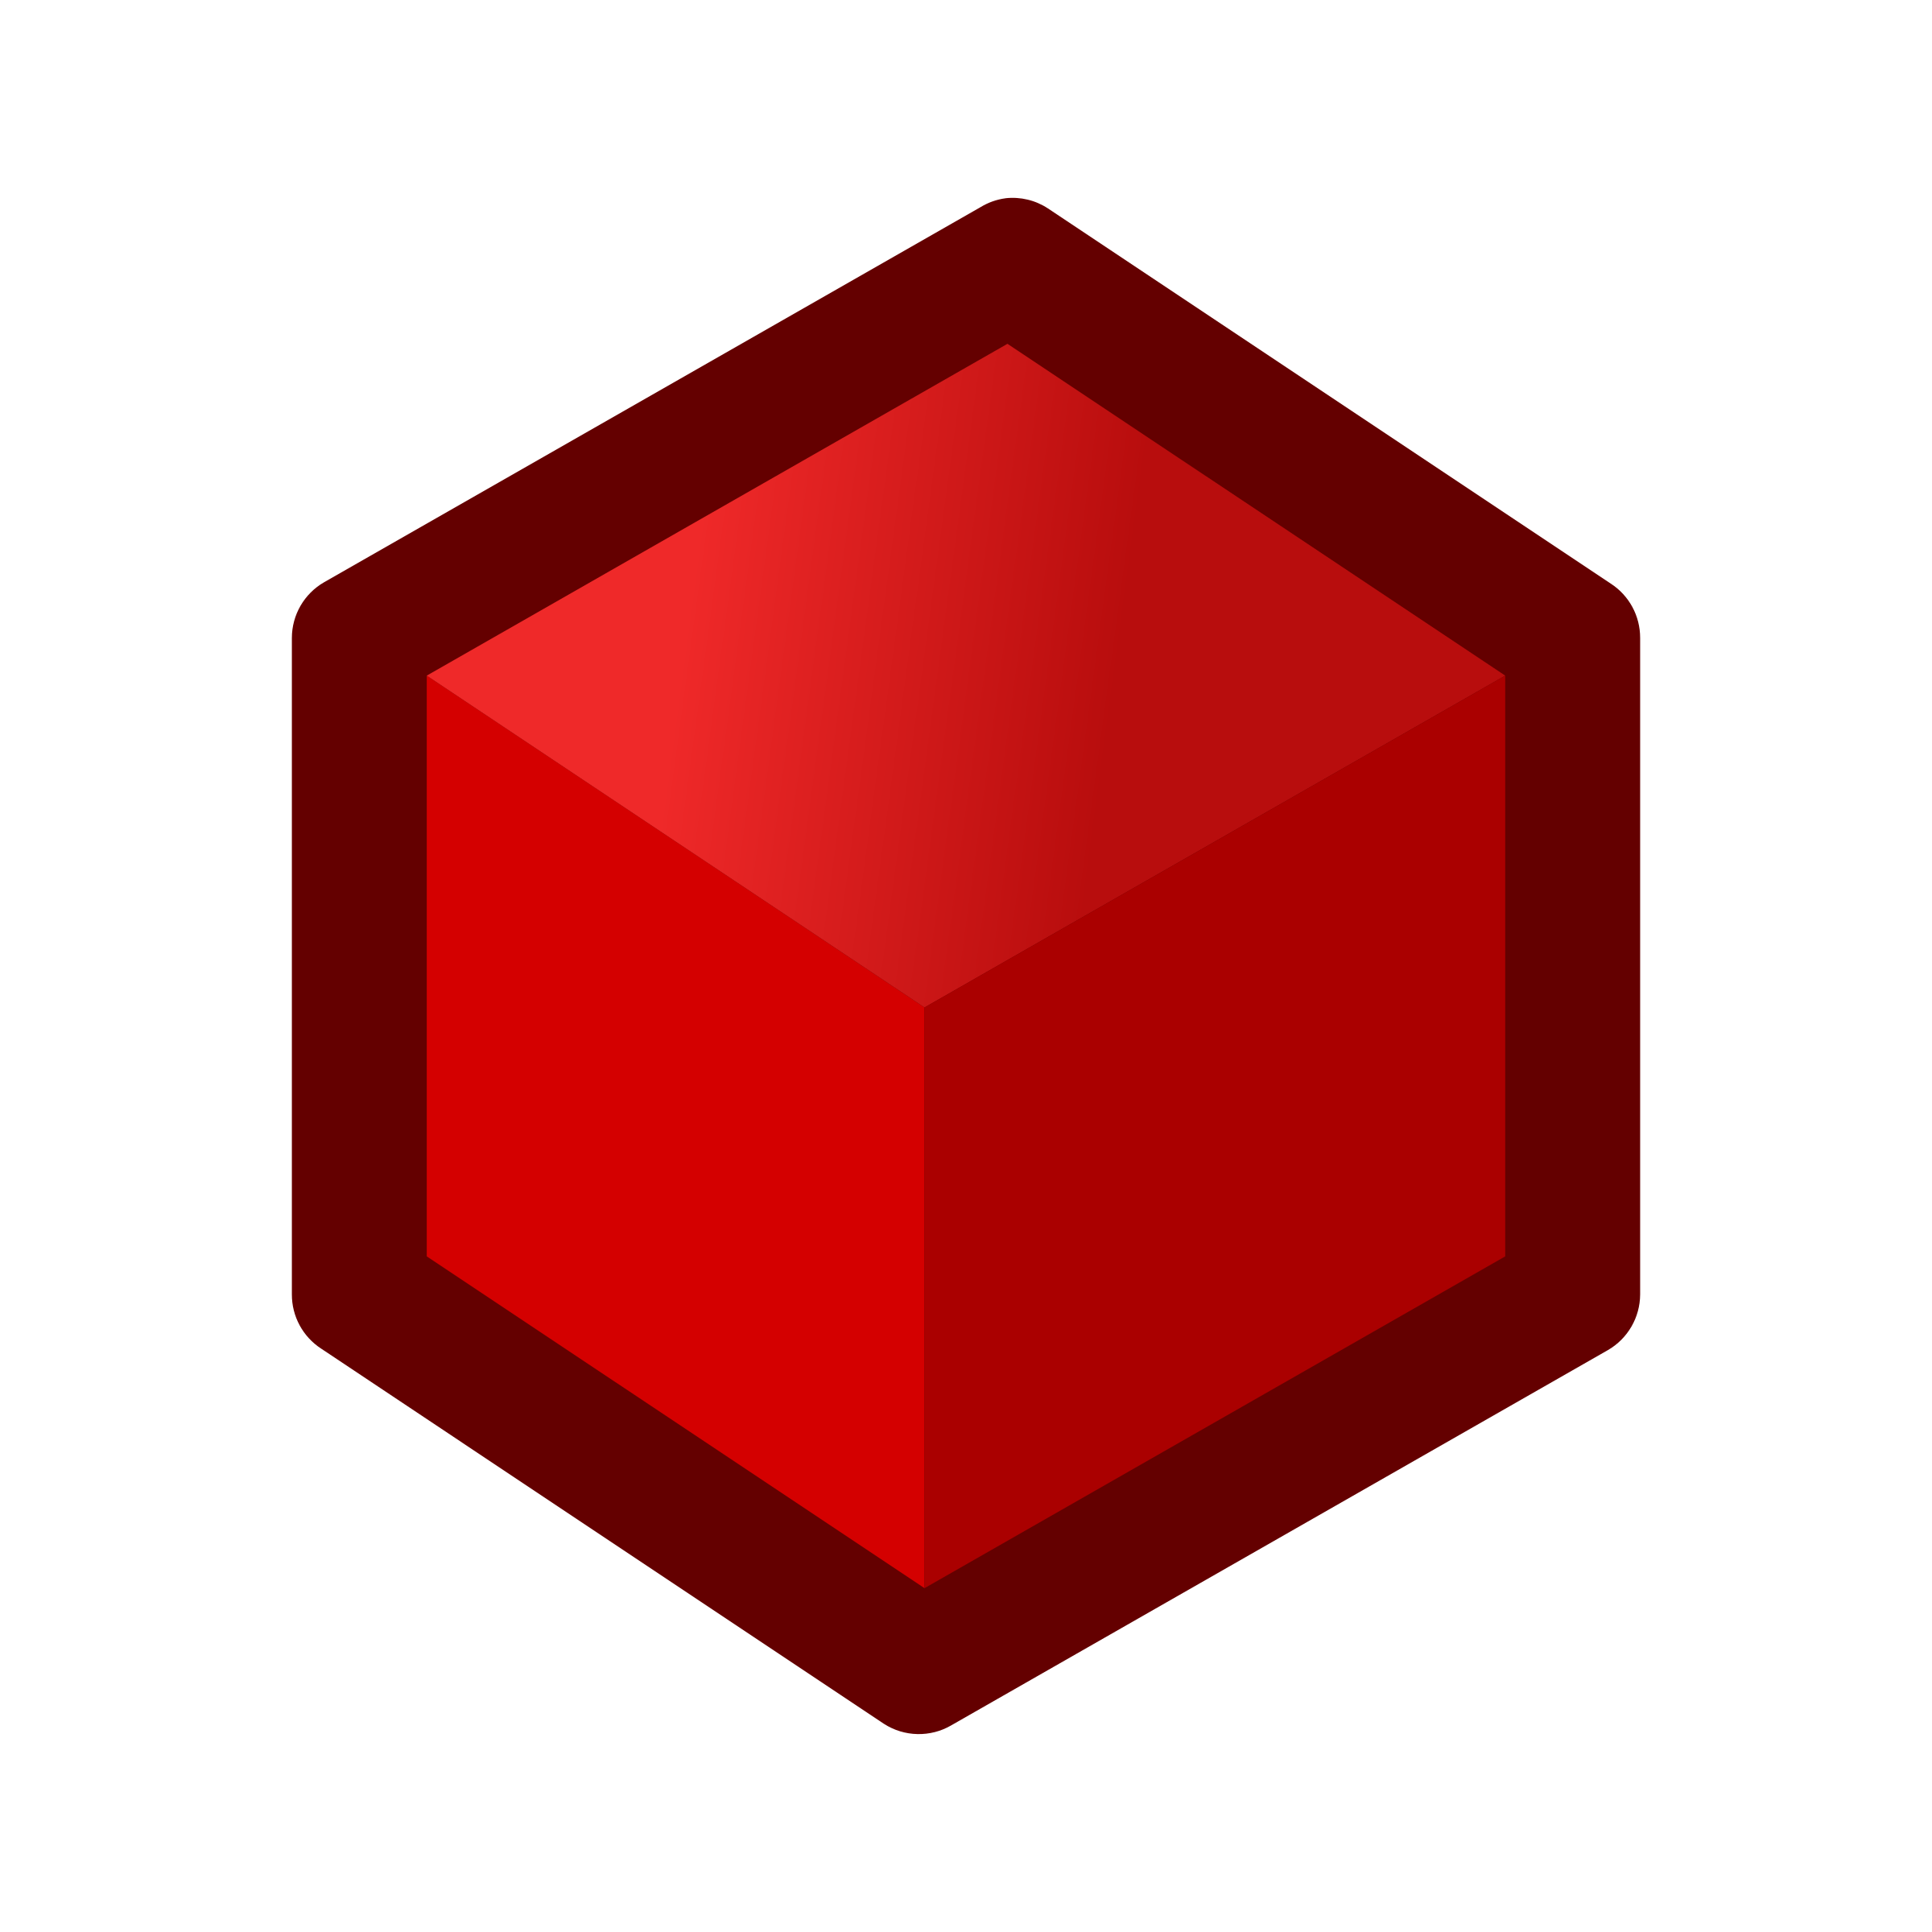 Cube clipart red Cube cube icon Clipart red